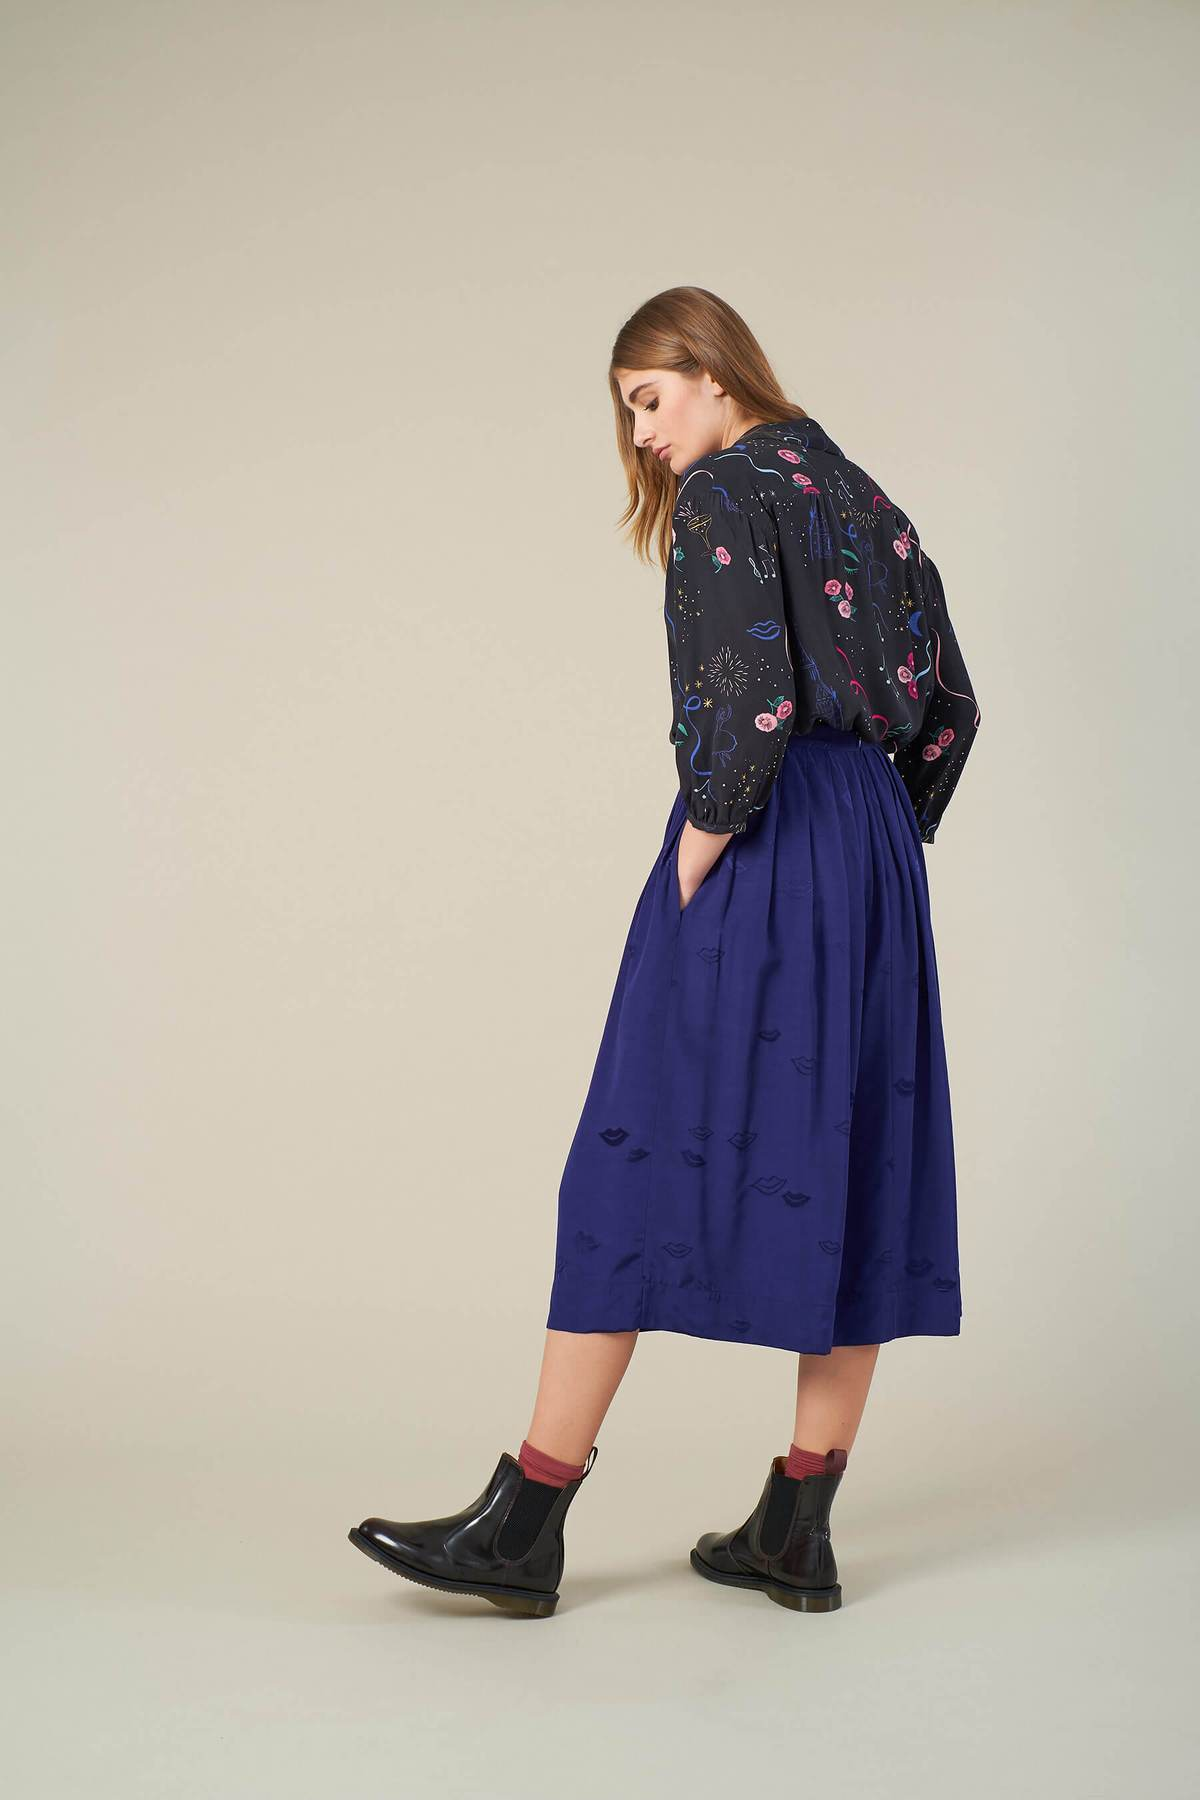 Faye Lips Jacquard Skirt in Purple